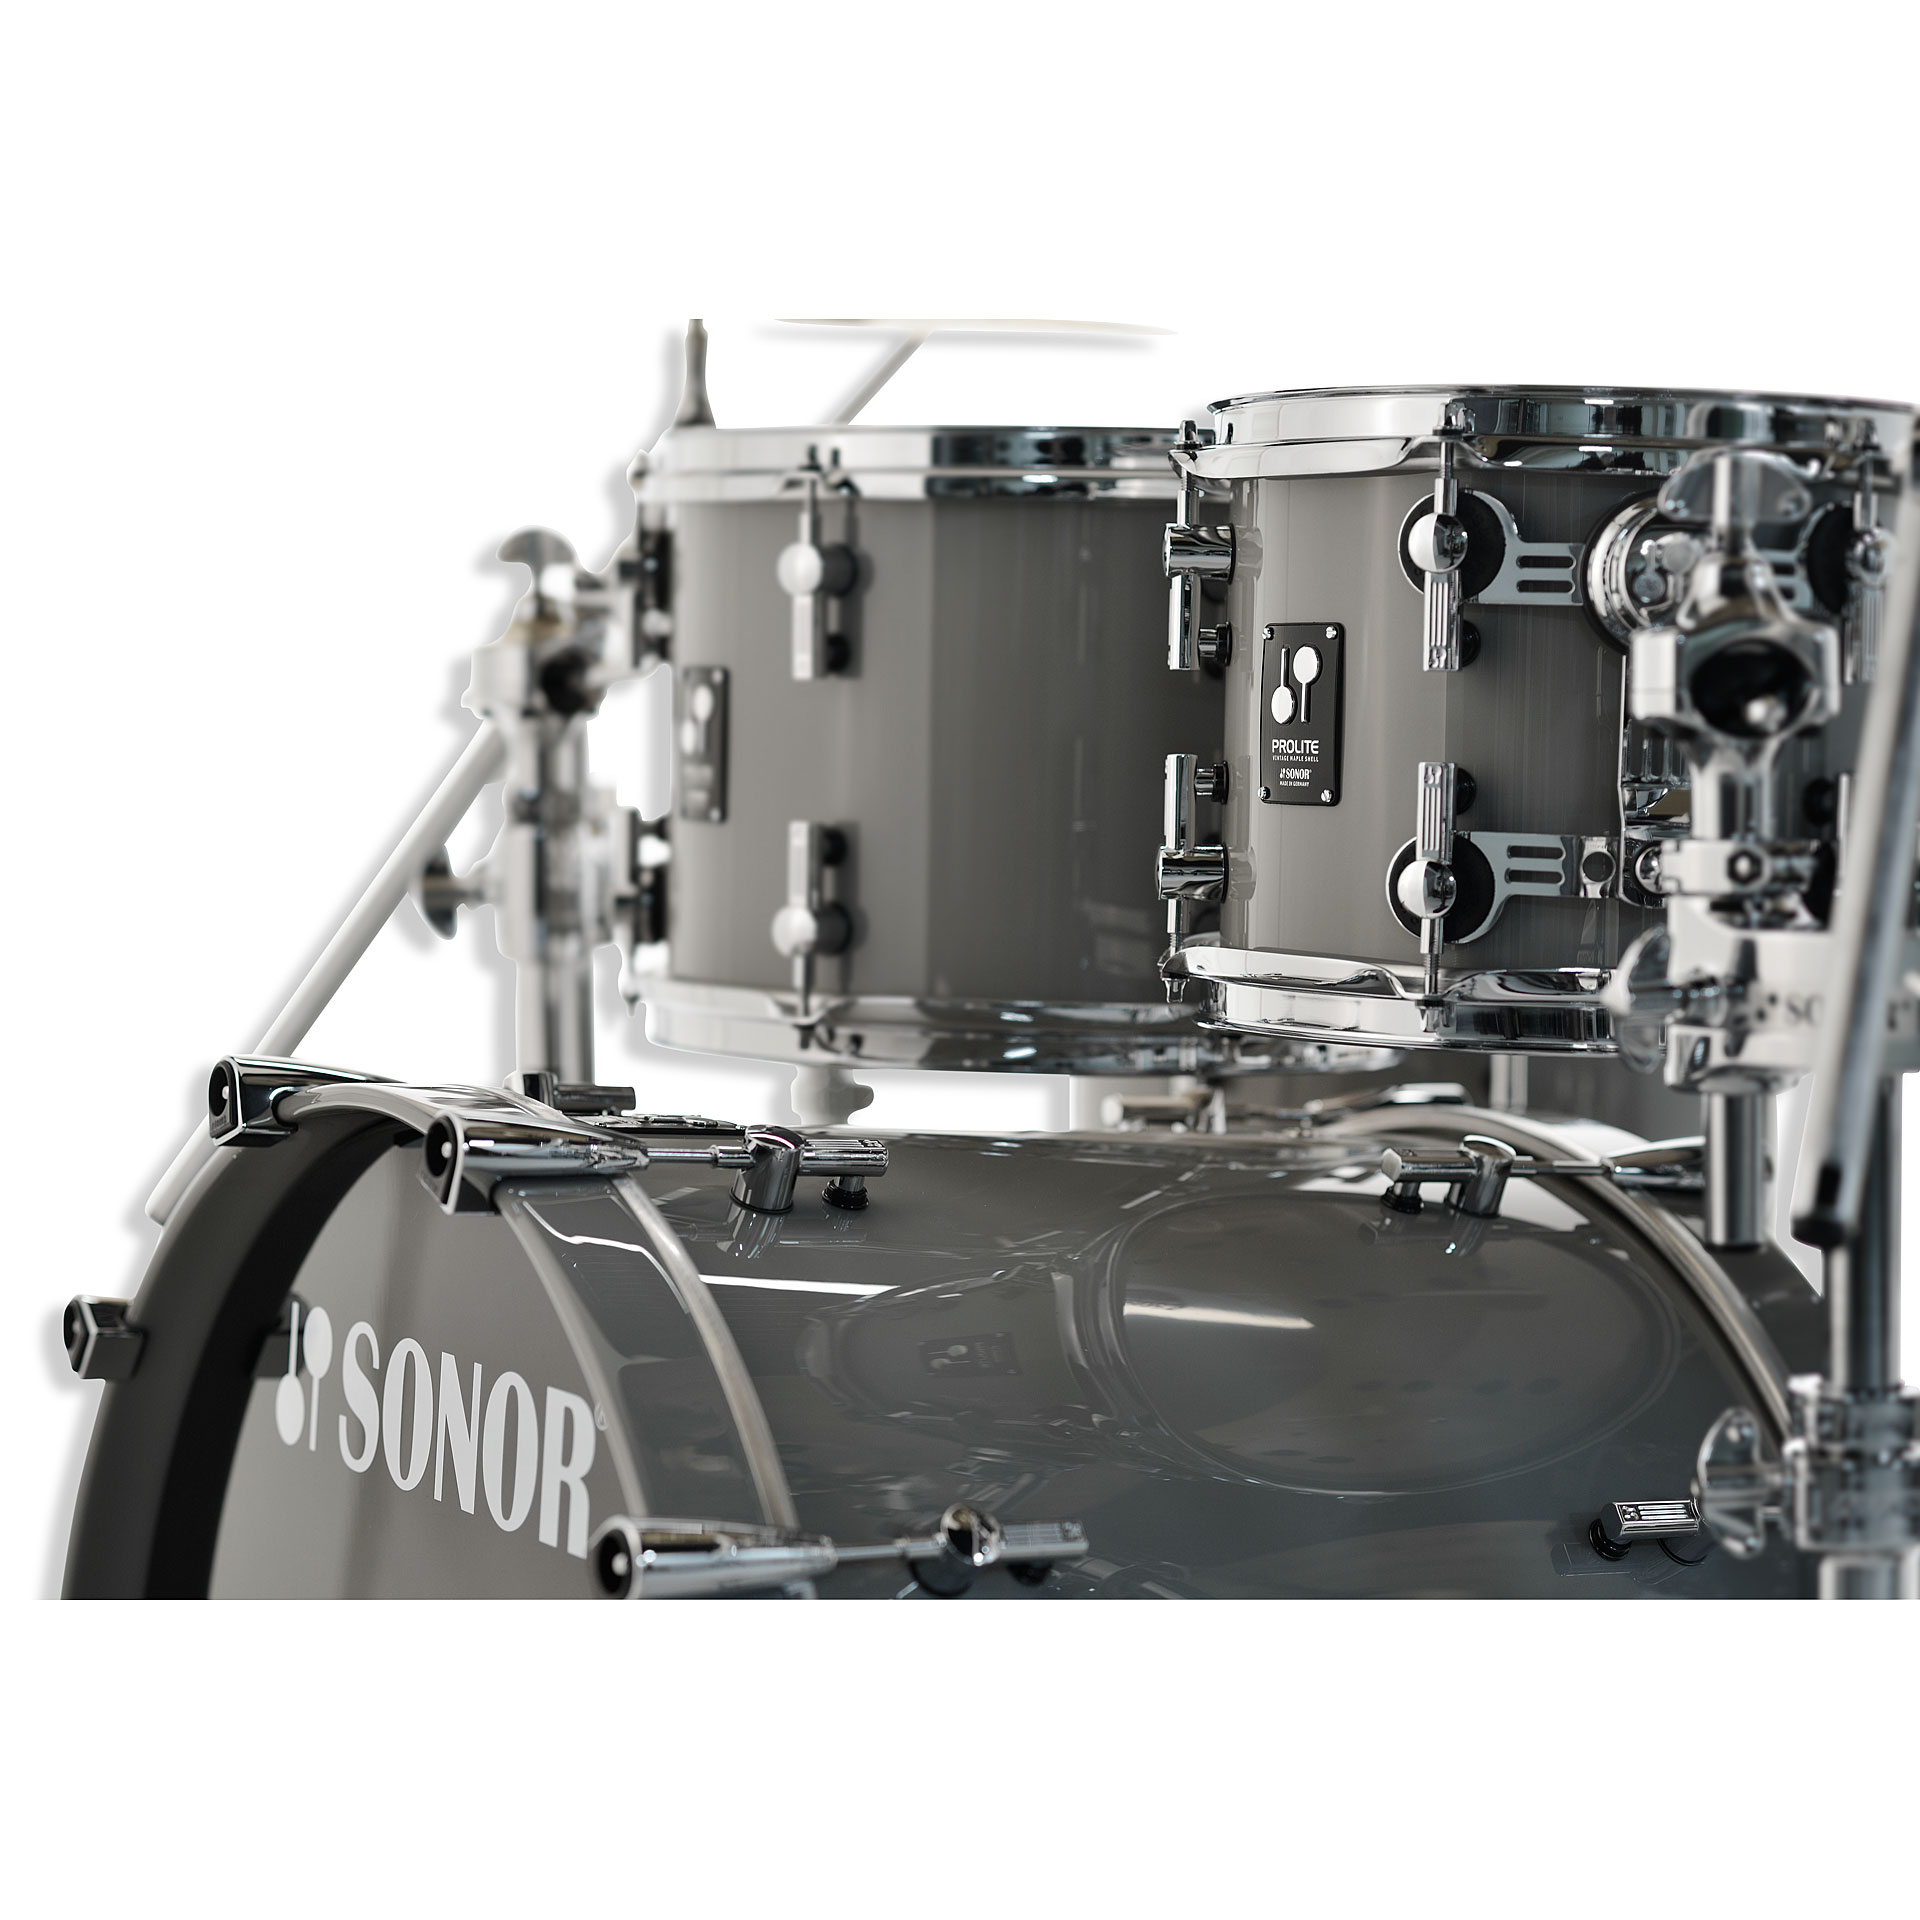 Sonor Sonor Prolite Sse Stage S Limited Edition Solid Lite